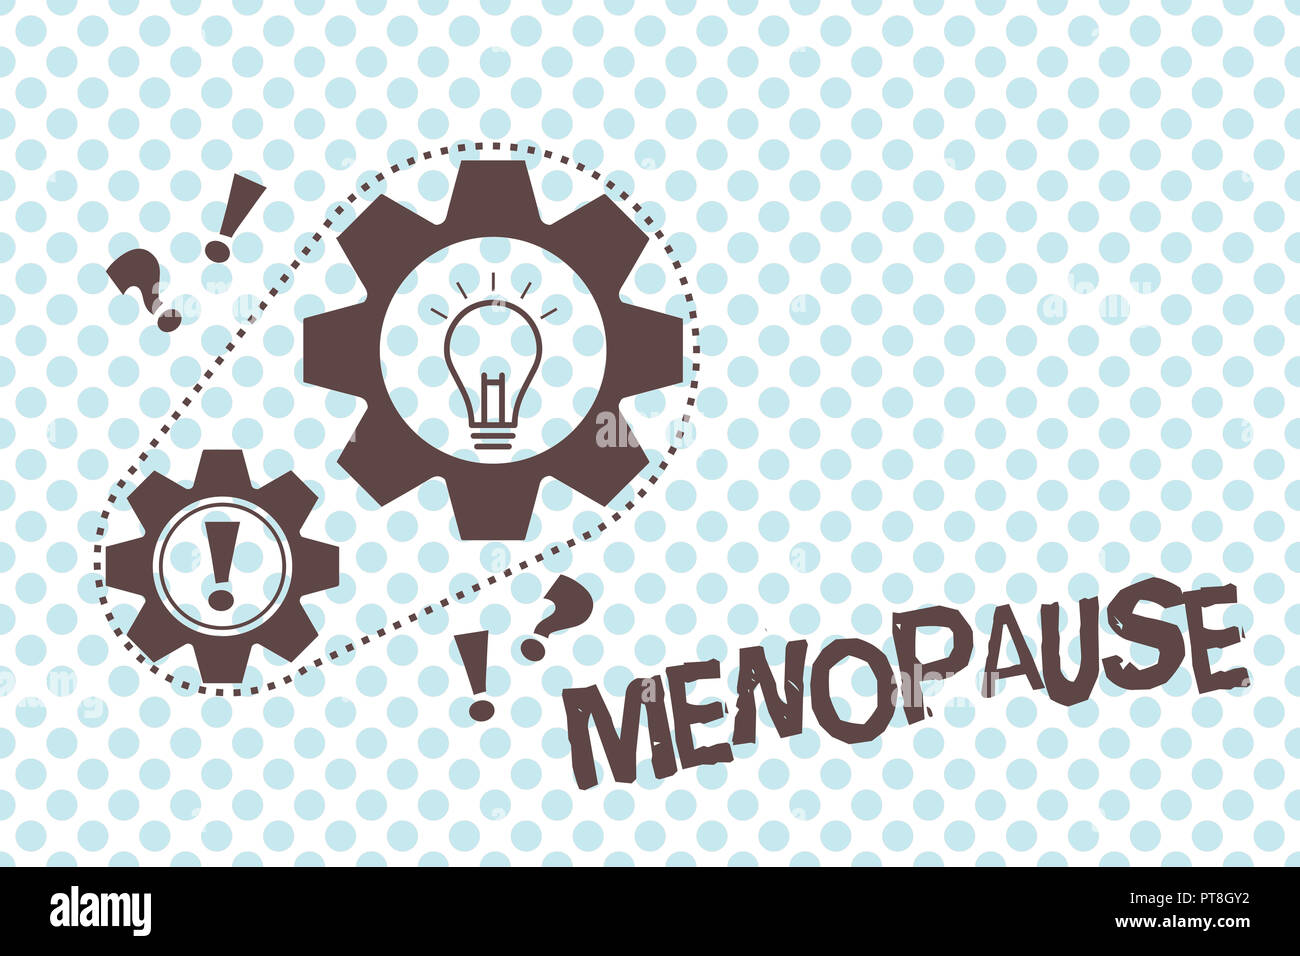 Writing note showing Menopause. Business photo showcasing Cessation of menstruation Older women hormonal changes period. - Stock Image